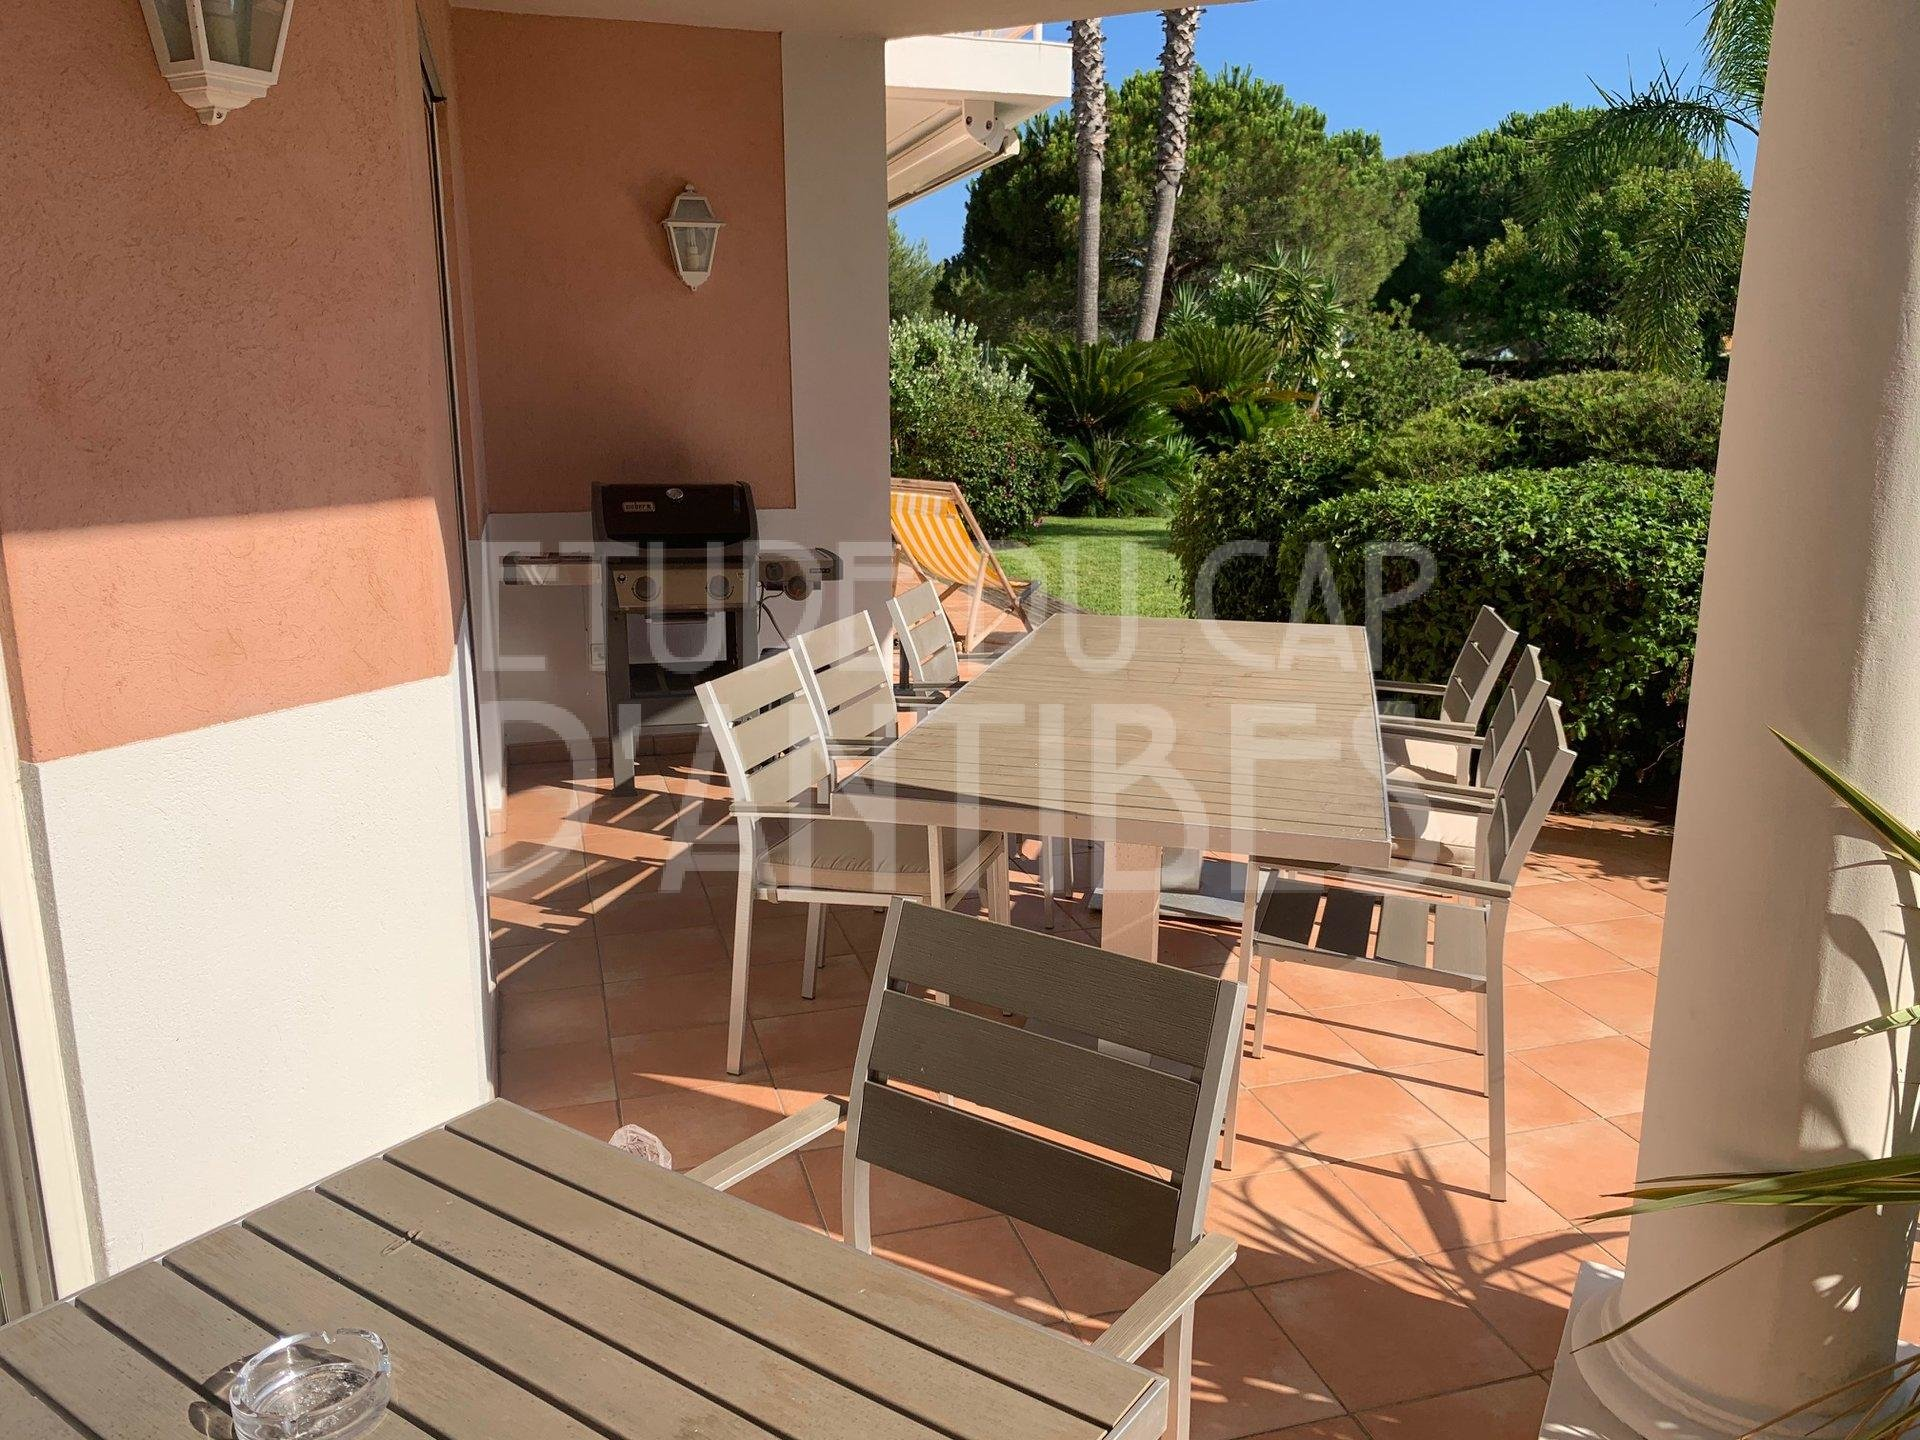 Cap d'Antibes - CLose to the sea - Villa for rent